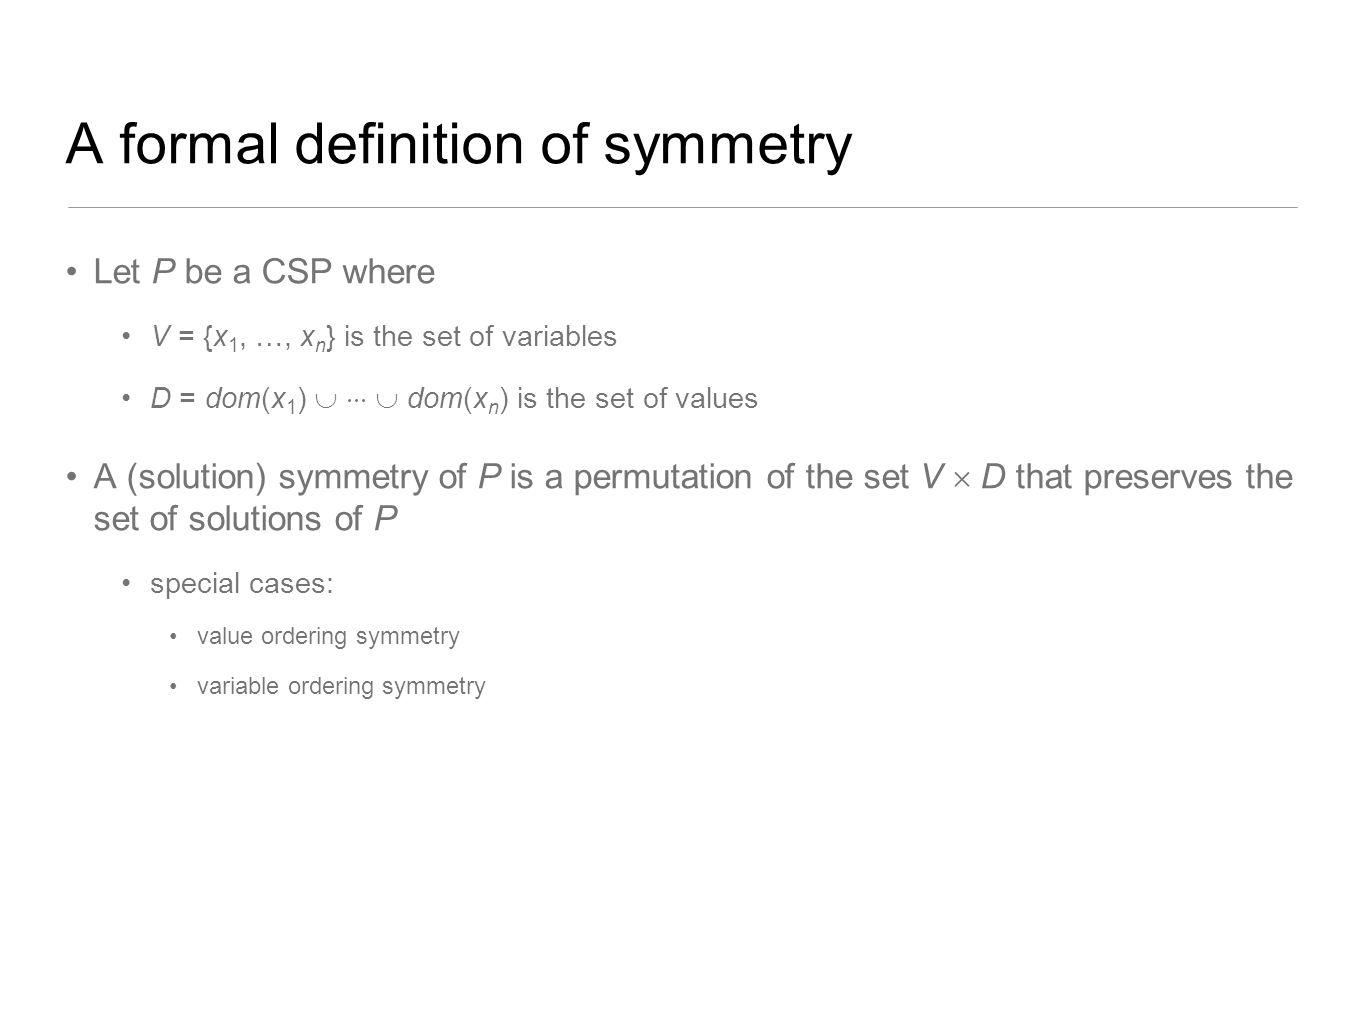 A formal definition of symmetry